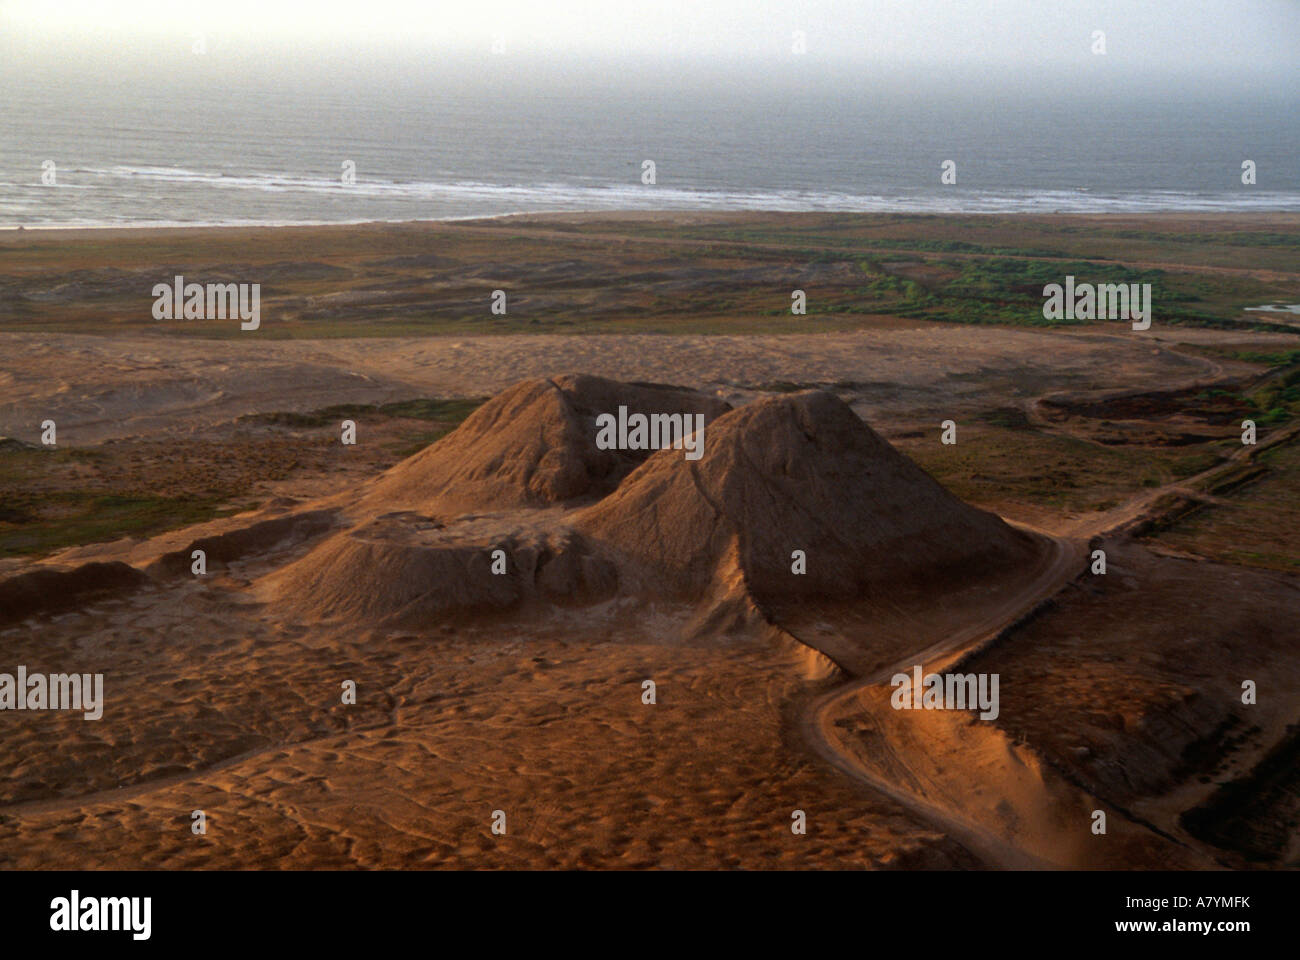 Aerial view of Huaca Dos Cabezas, corner of mudbrick pyramid, was looted by the Spanish, Pacific ocean on the horizon - Stock Image